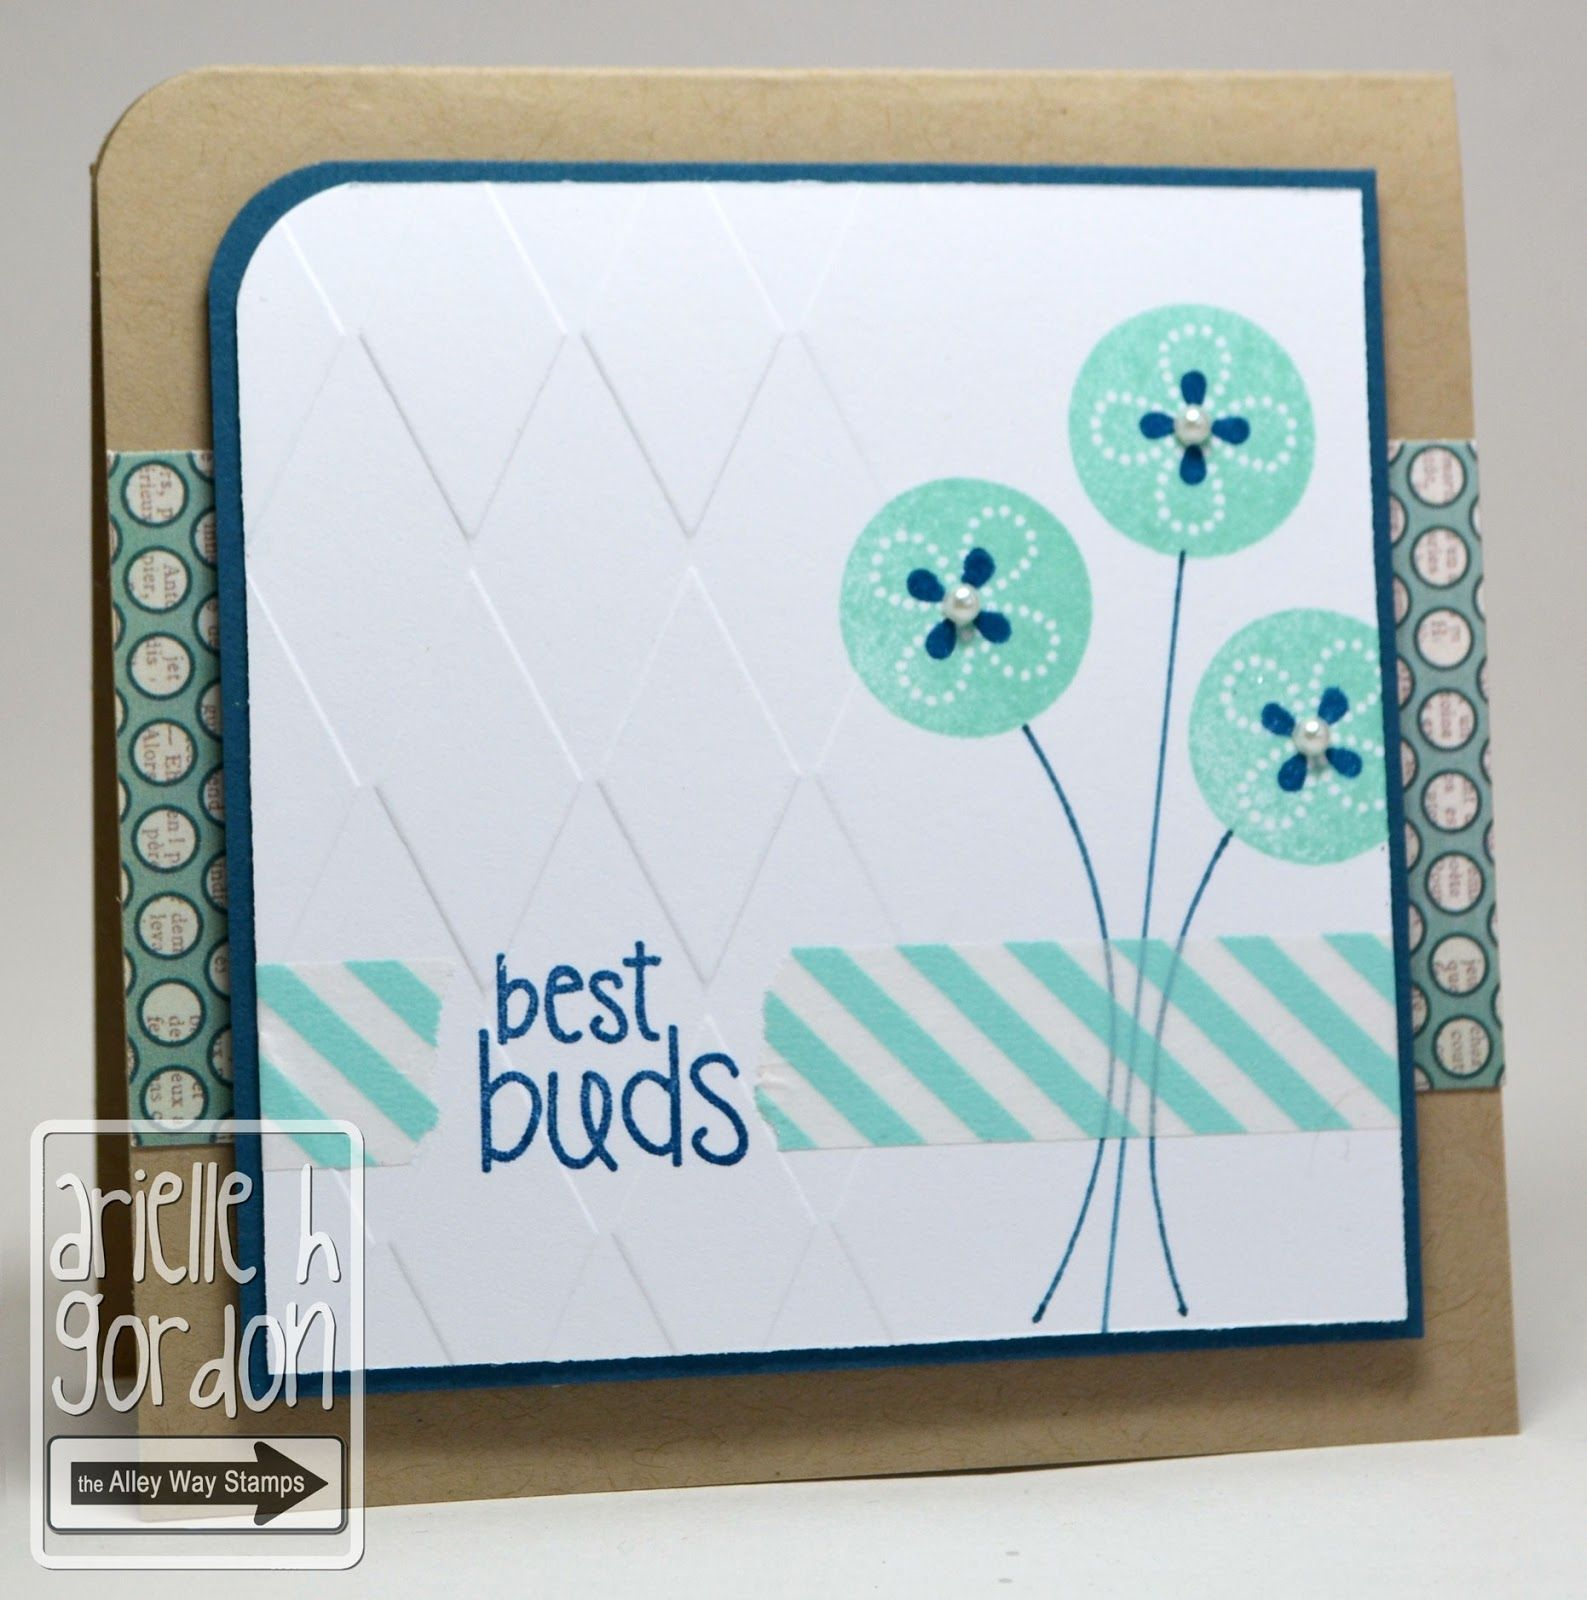 Snappy Stampin' w/ Arielle: BEST BUDS / TAWS Sneak Peek Day #3 & CTS #6... The Alley Way Stamps